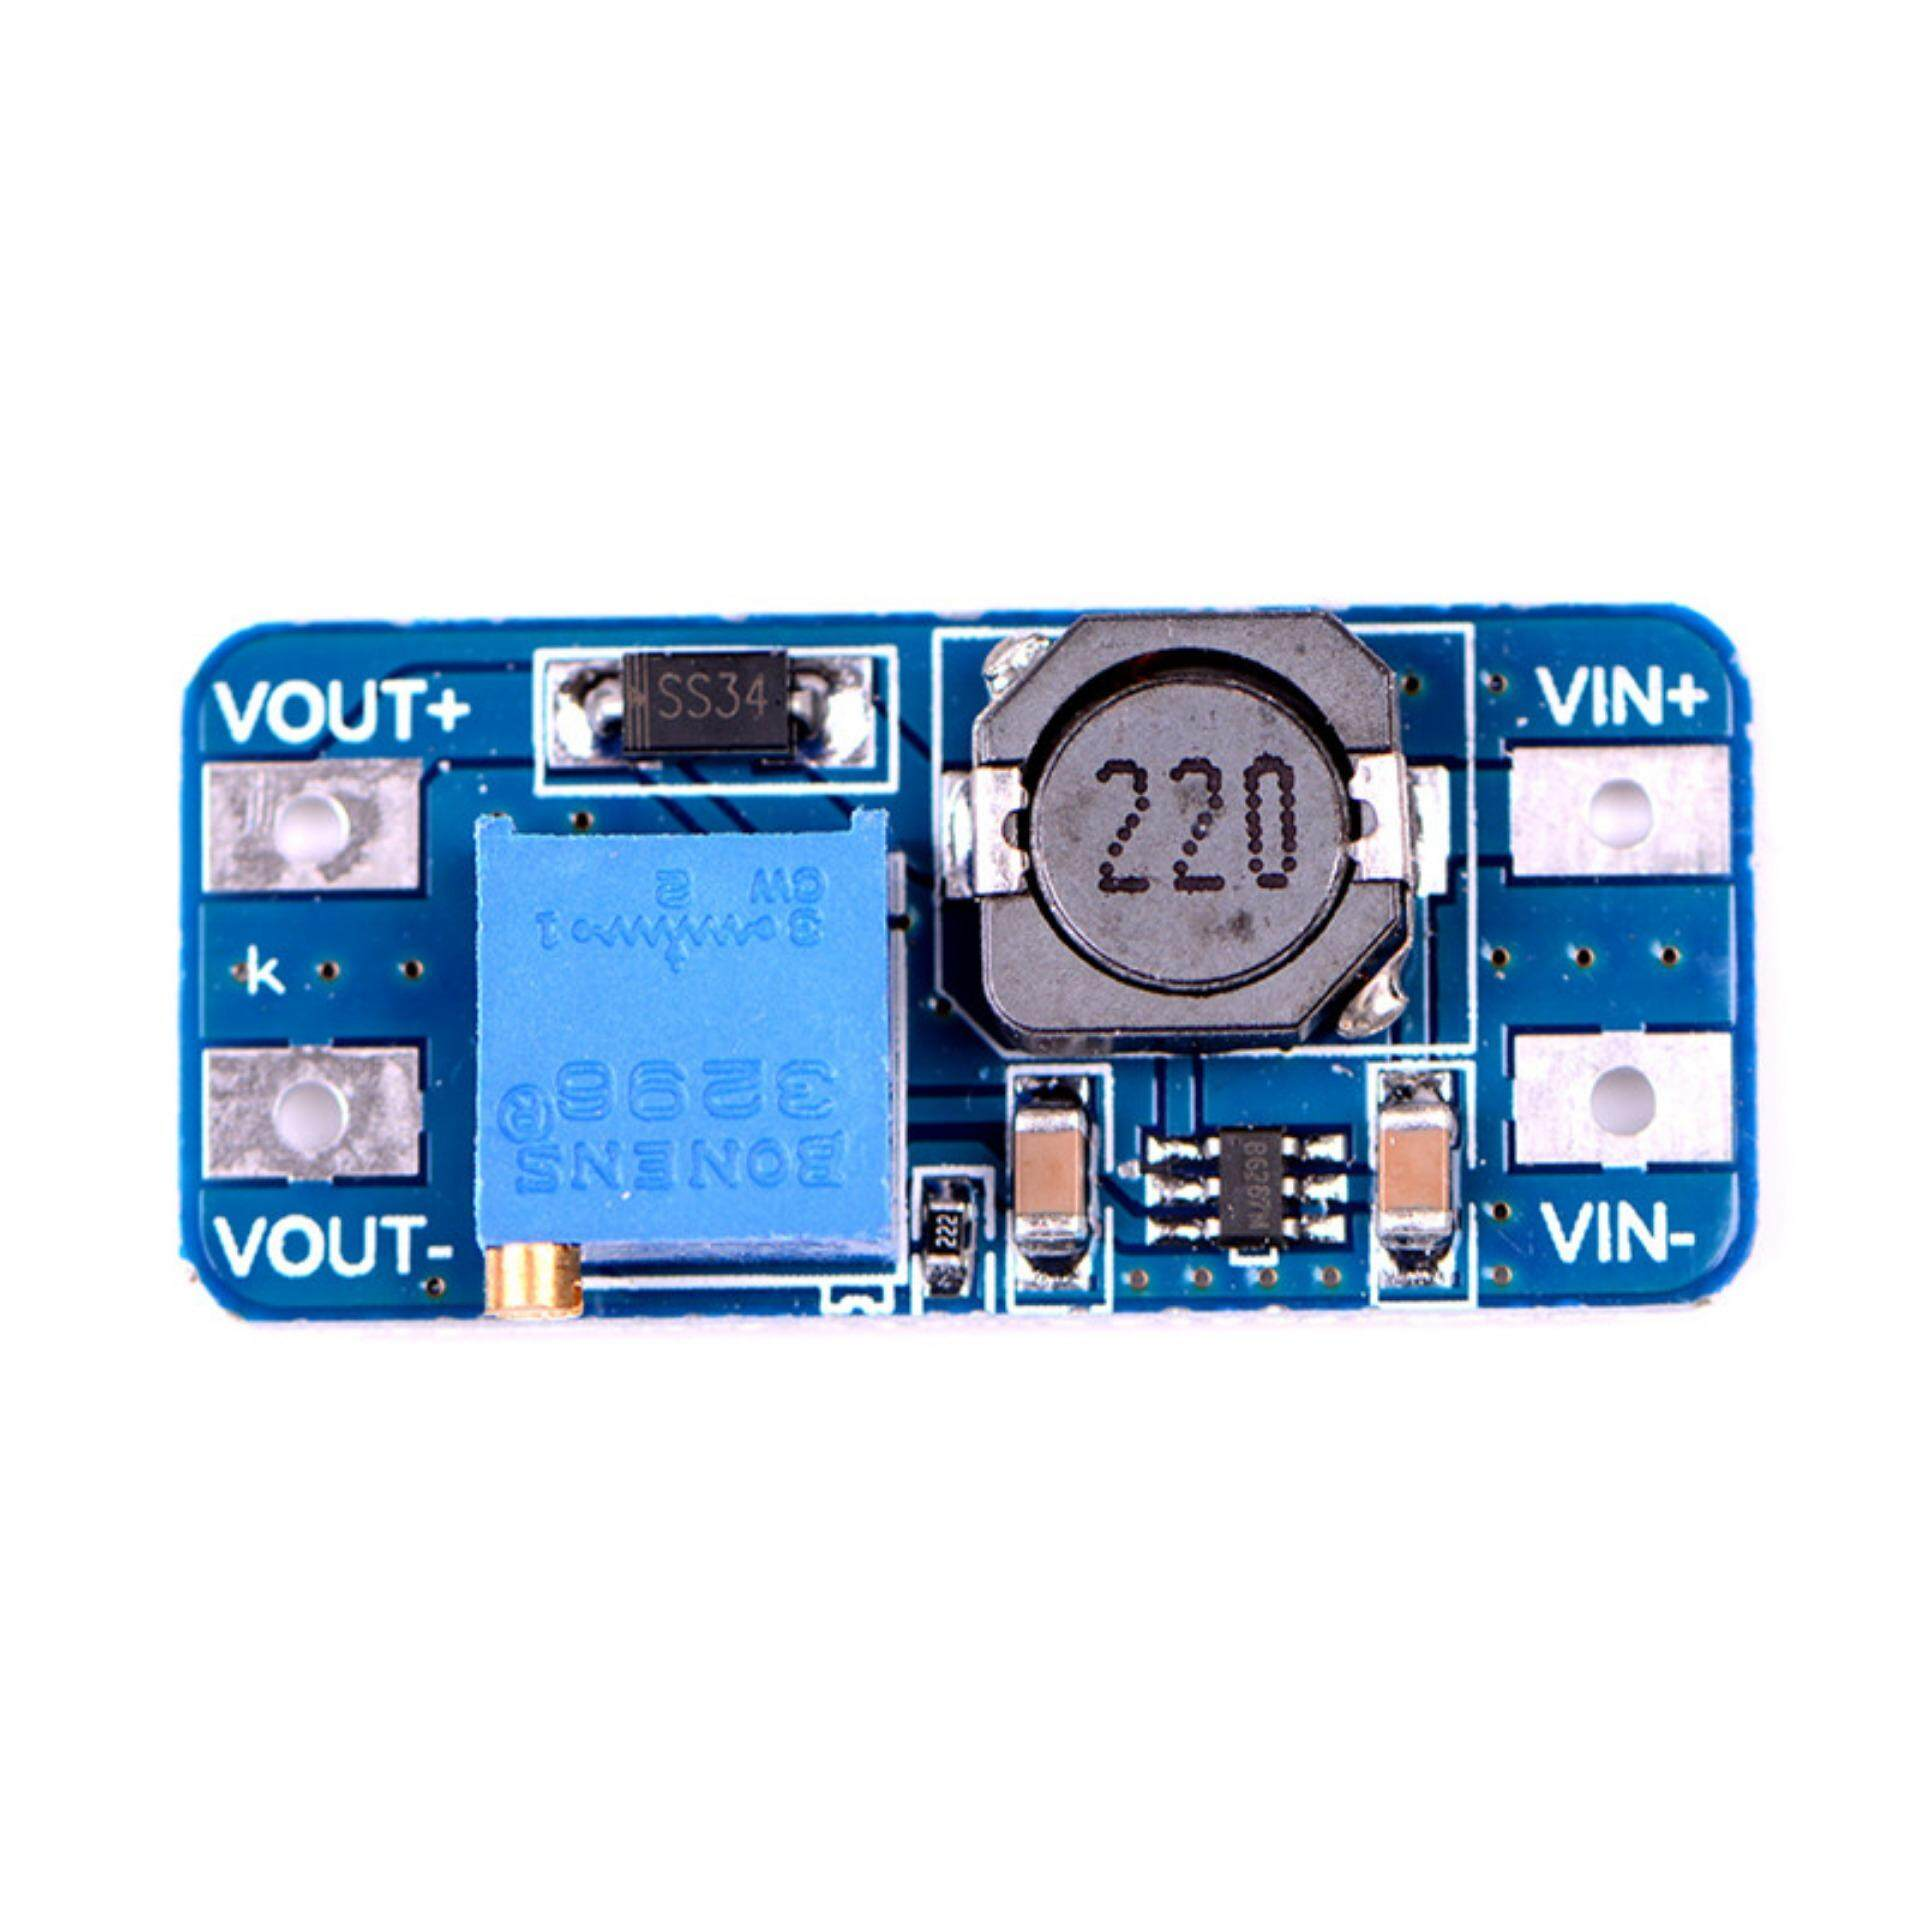 Buy Oem Power Supply Cables And Adapters Lazada Supercap Charger Plus A 5v At 4a Dc Buck Converter From 55v To 30v Step Up Boost 2a Module Parts Accessories Blue Intl